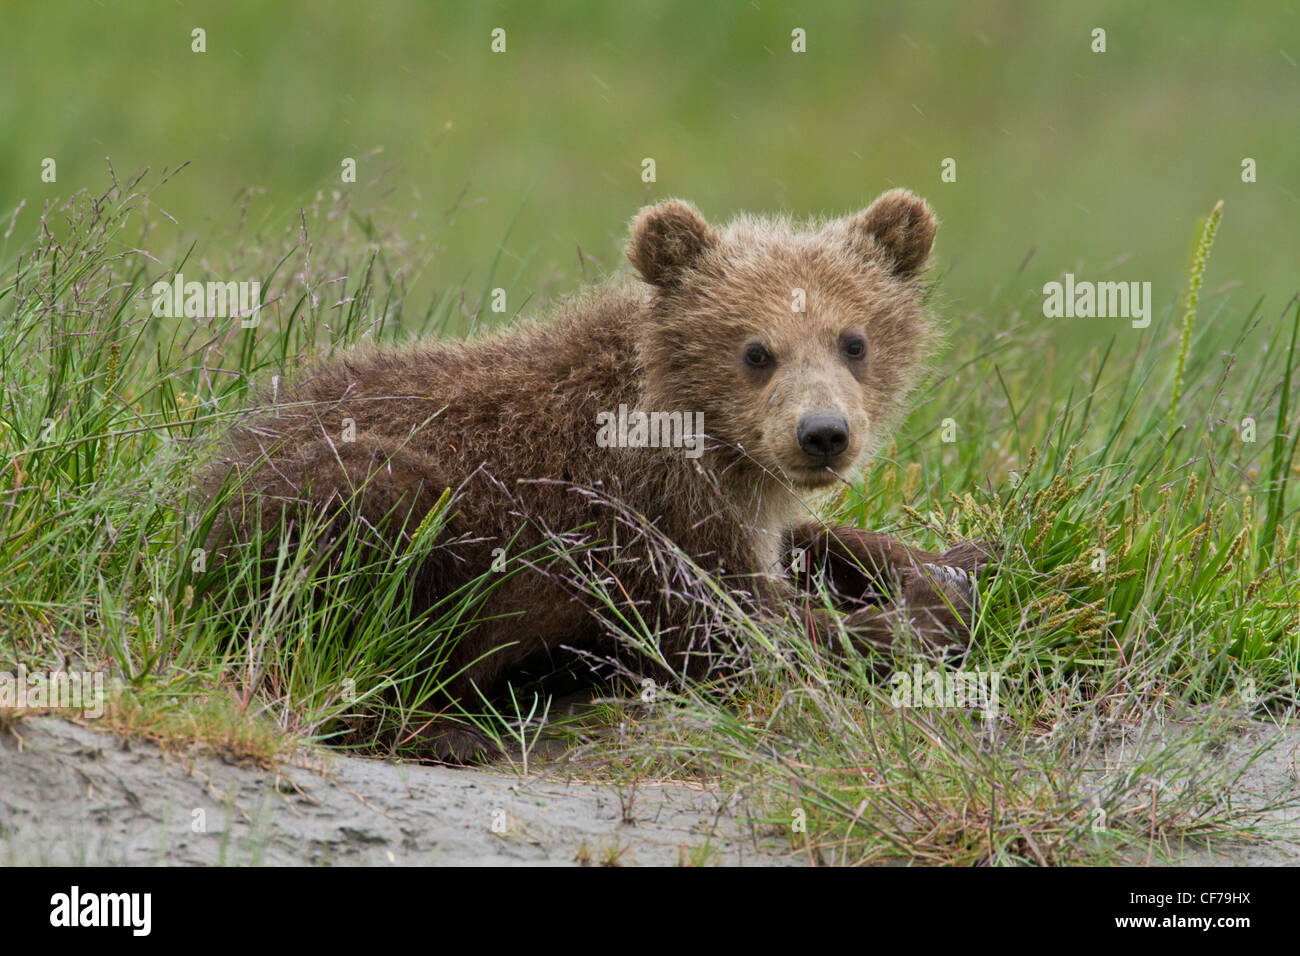 Alaskan brown Bear Cub im Gras liegend Stockbild